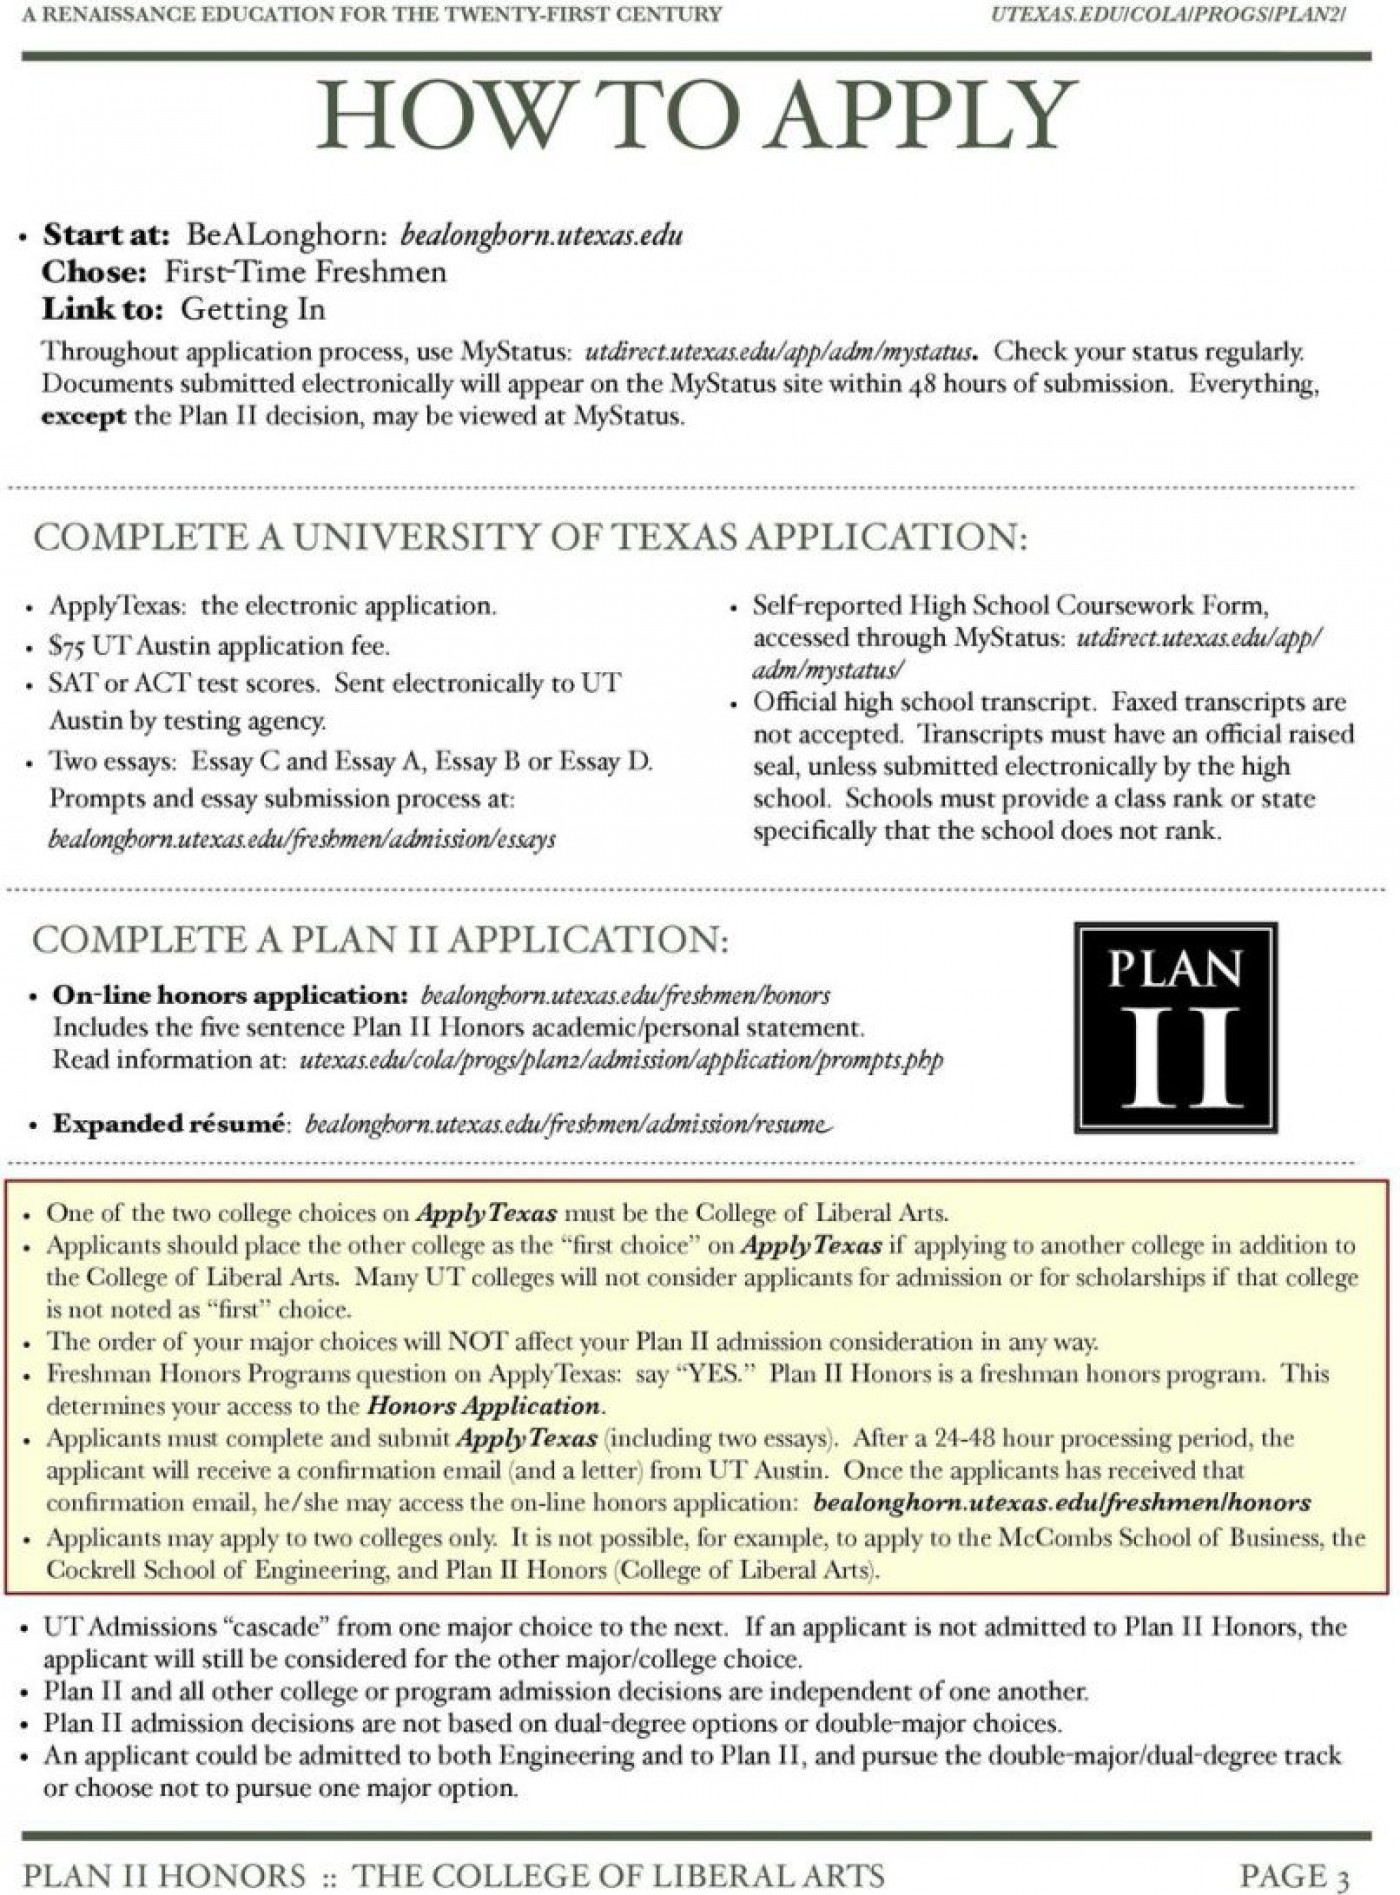 004 Essay Example Applytexas Prompts Poemdoc Or Apply Texas Topic Examples P Top Essays Word Limit 2016 2019 1400